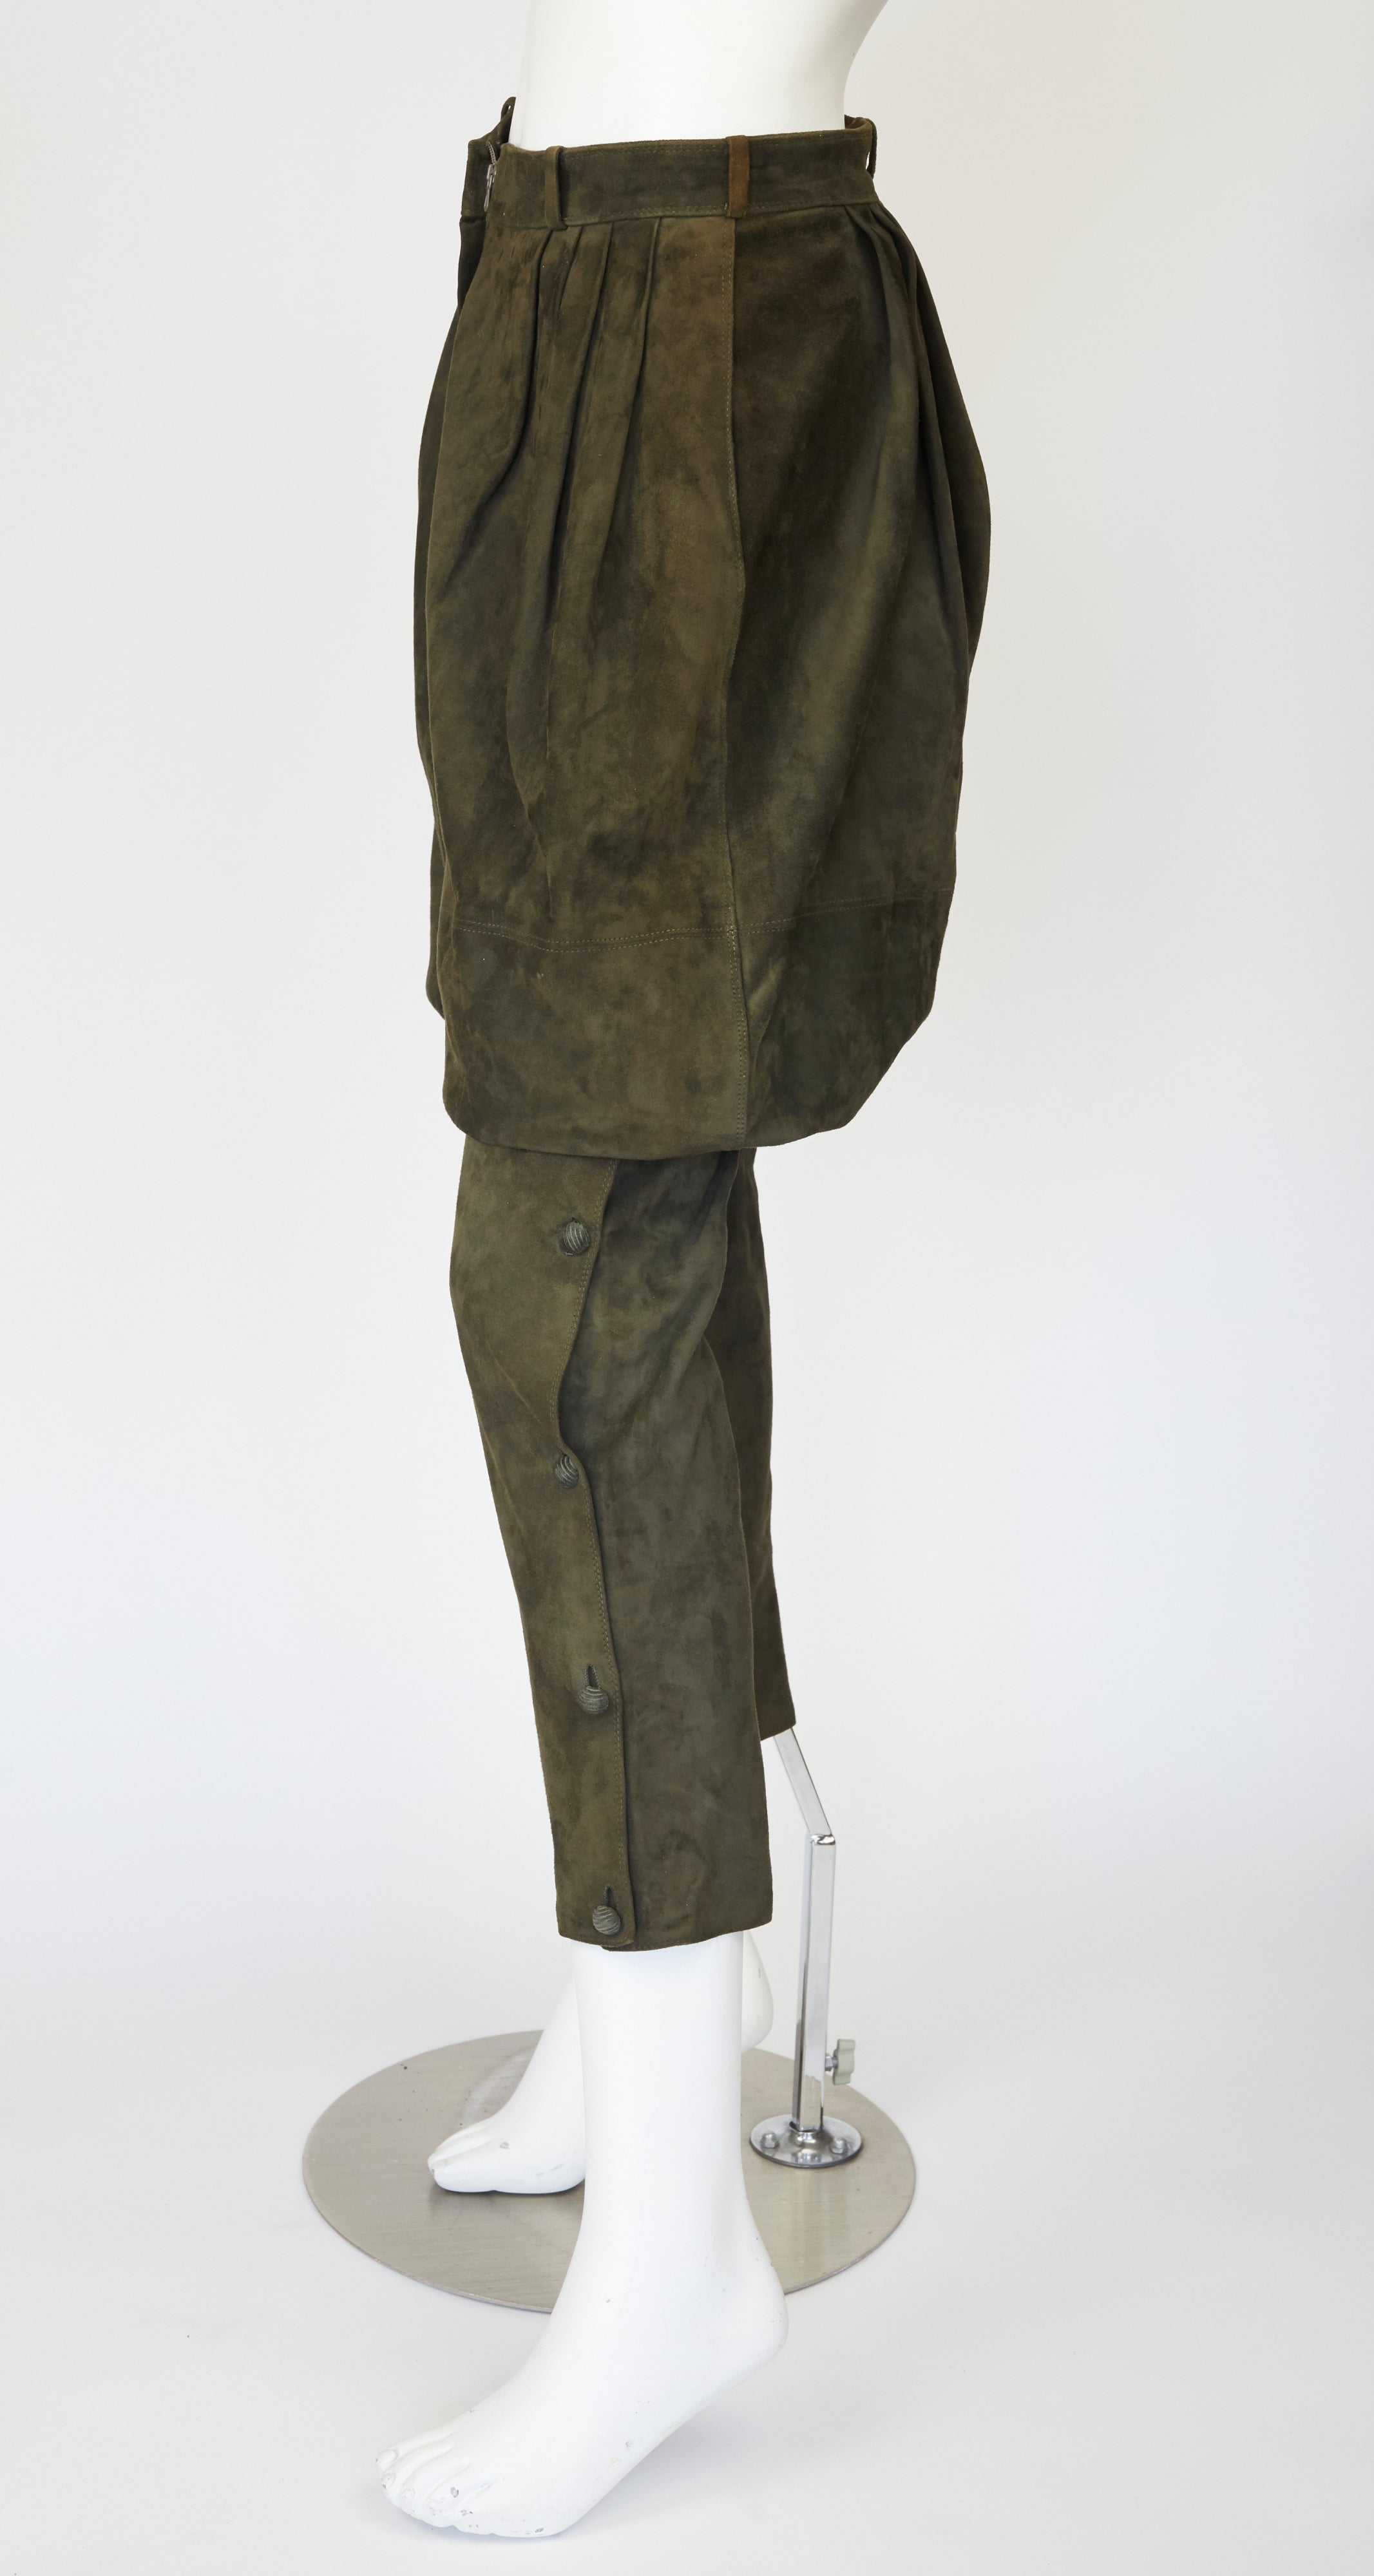 1981 Olive Green Suede & Corduroy Balloon Pants